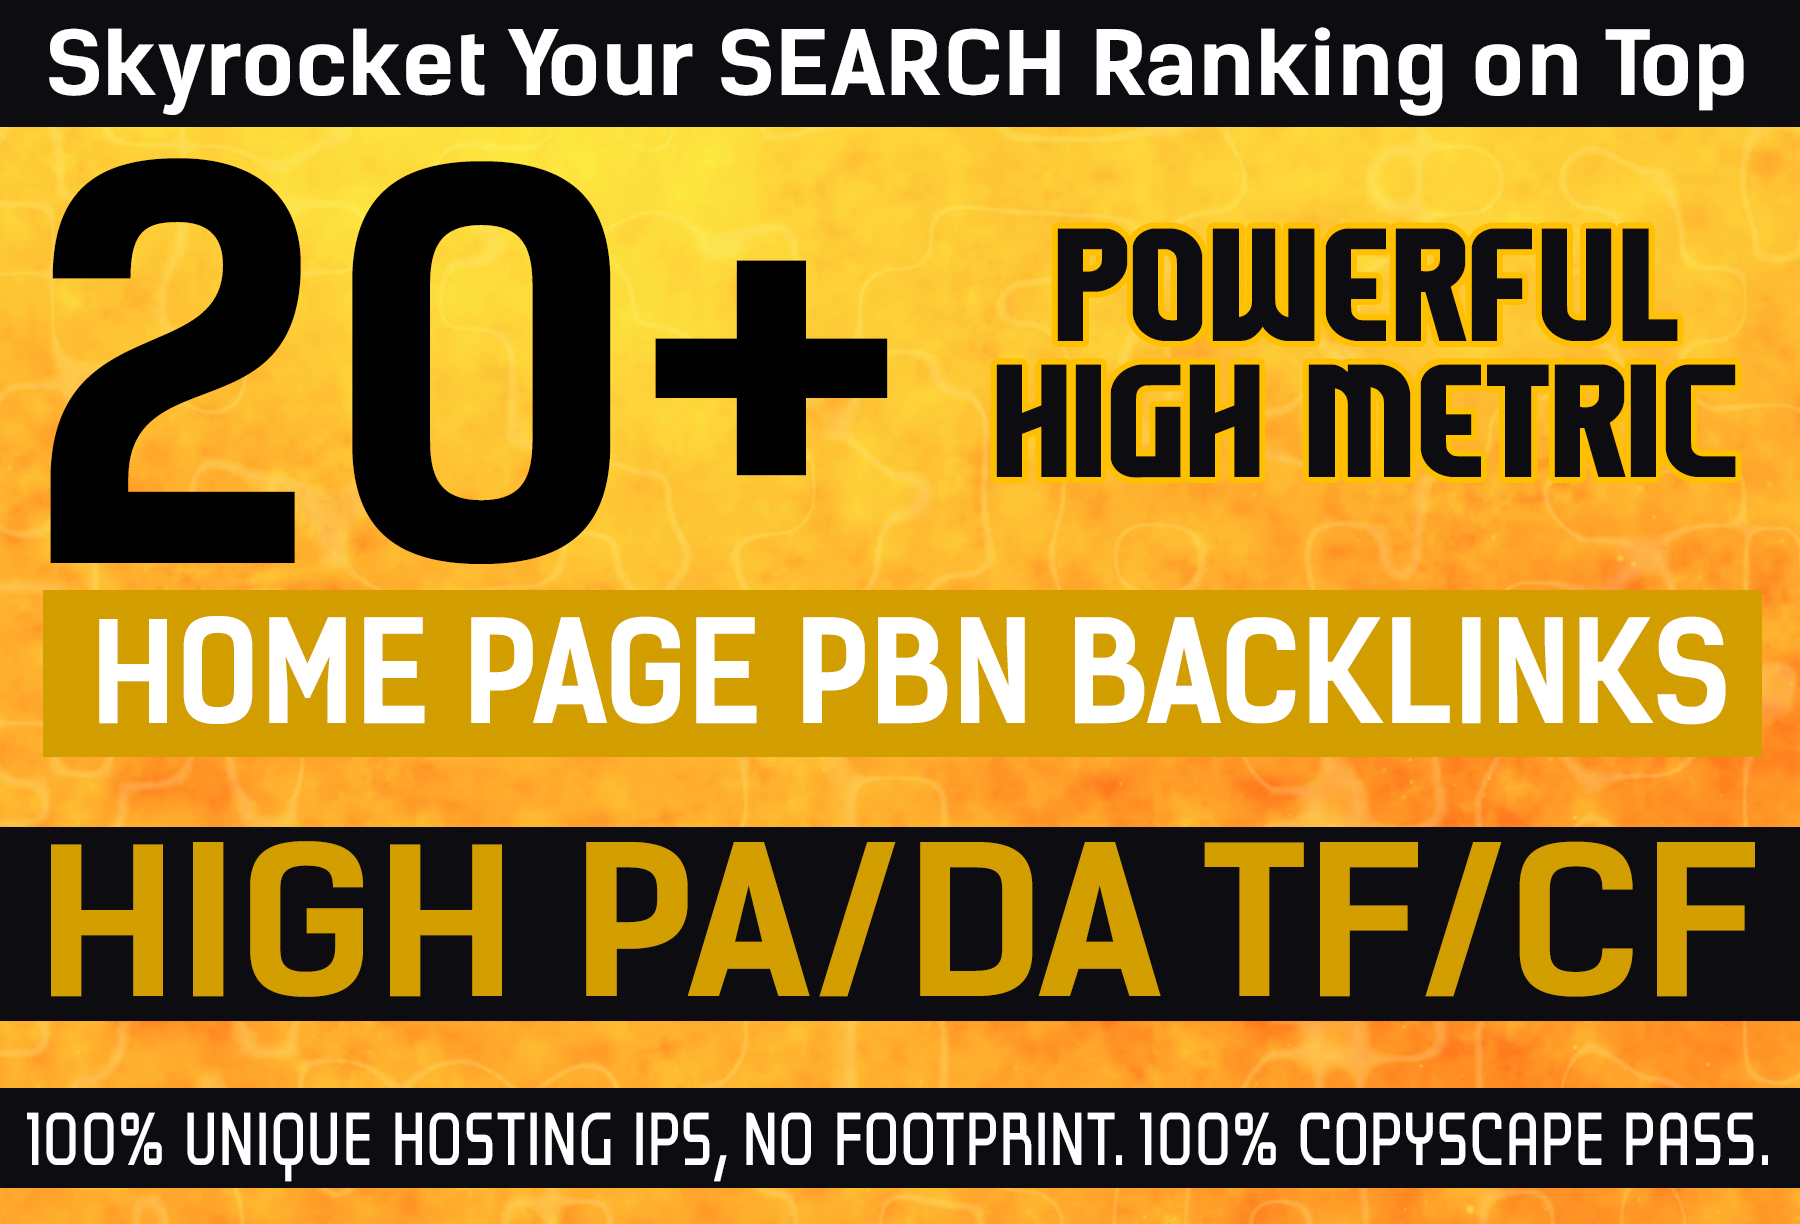 I will create 20 Extreamly powerful homepage pbn backlinks